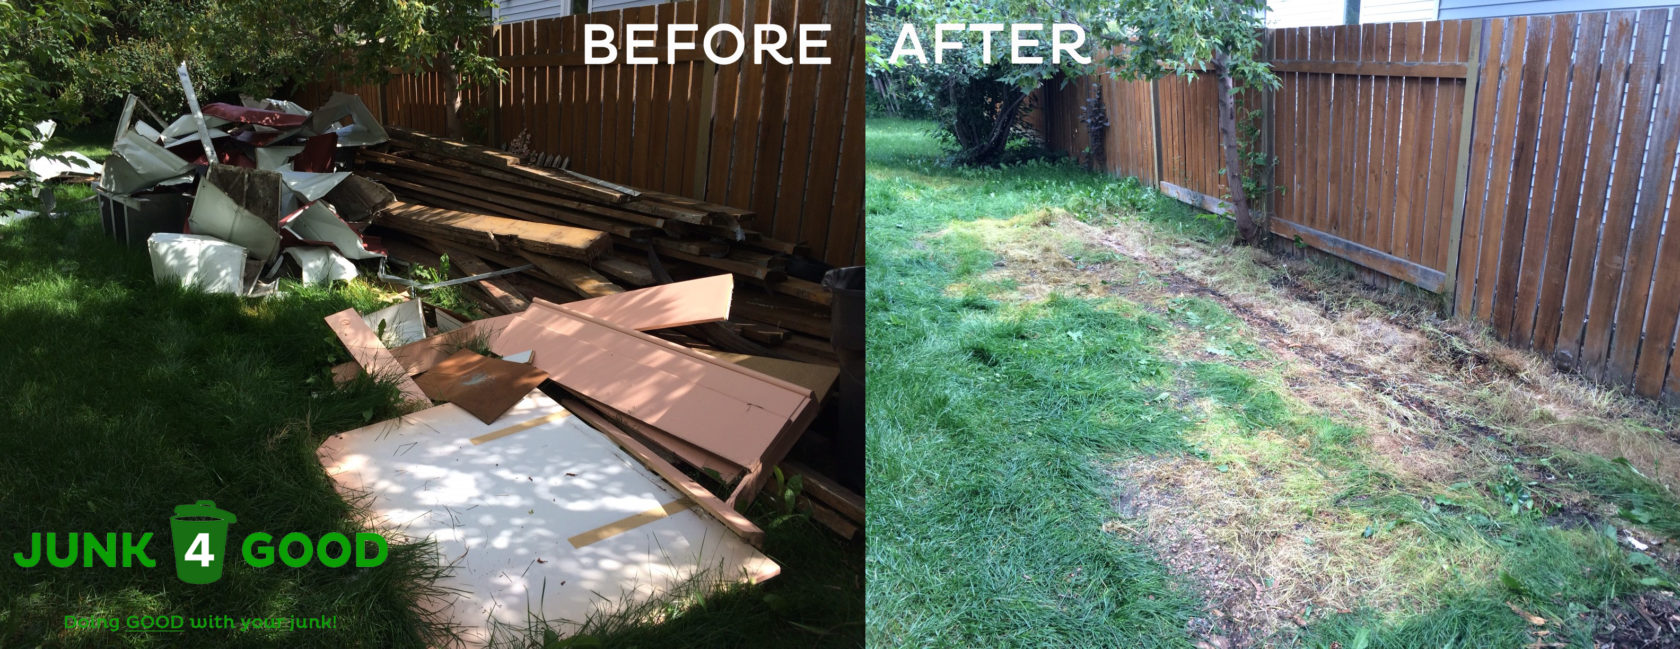 Before And After Photo Of A Pile Of Junk In A Yard, Including Deck Boards